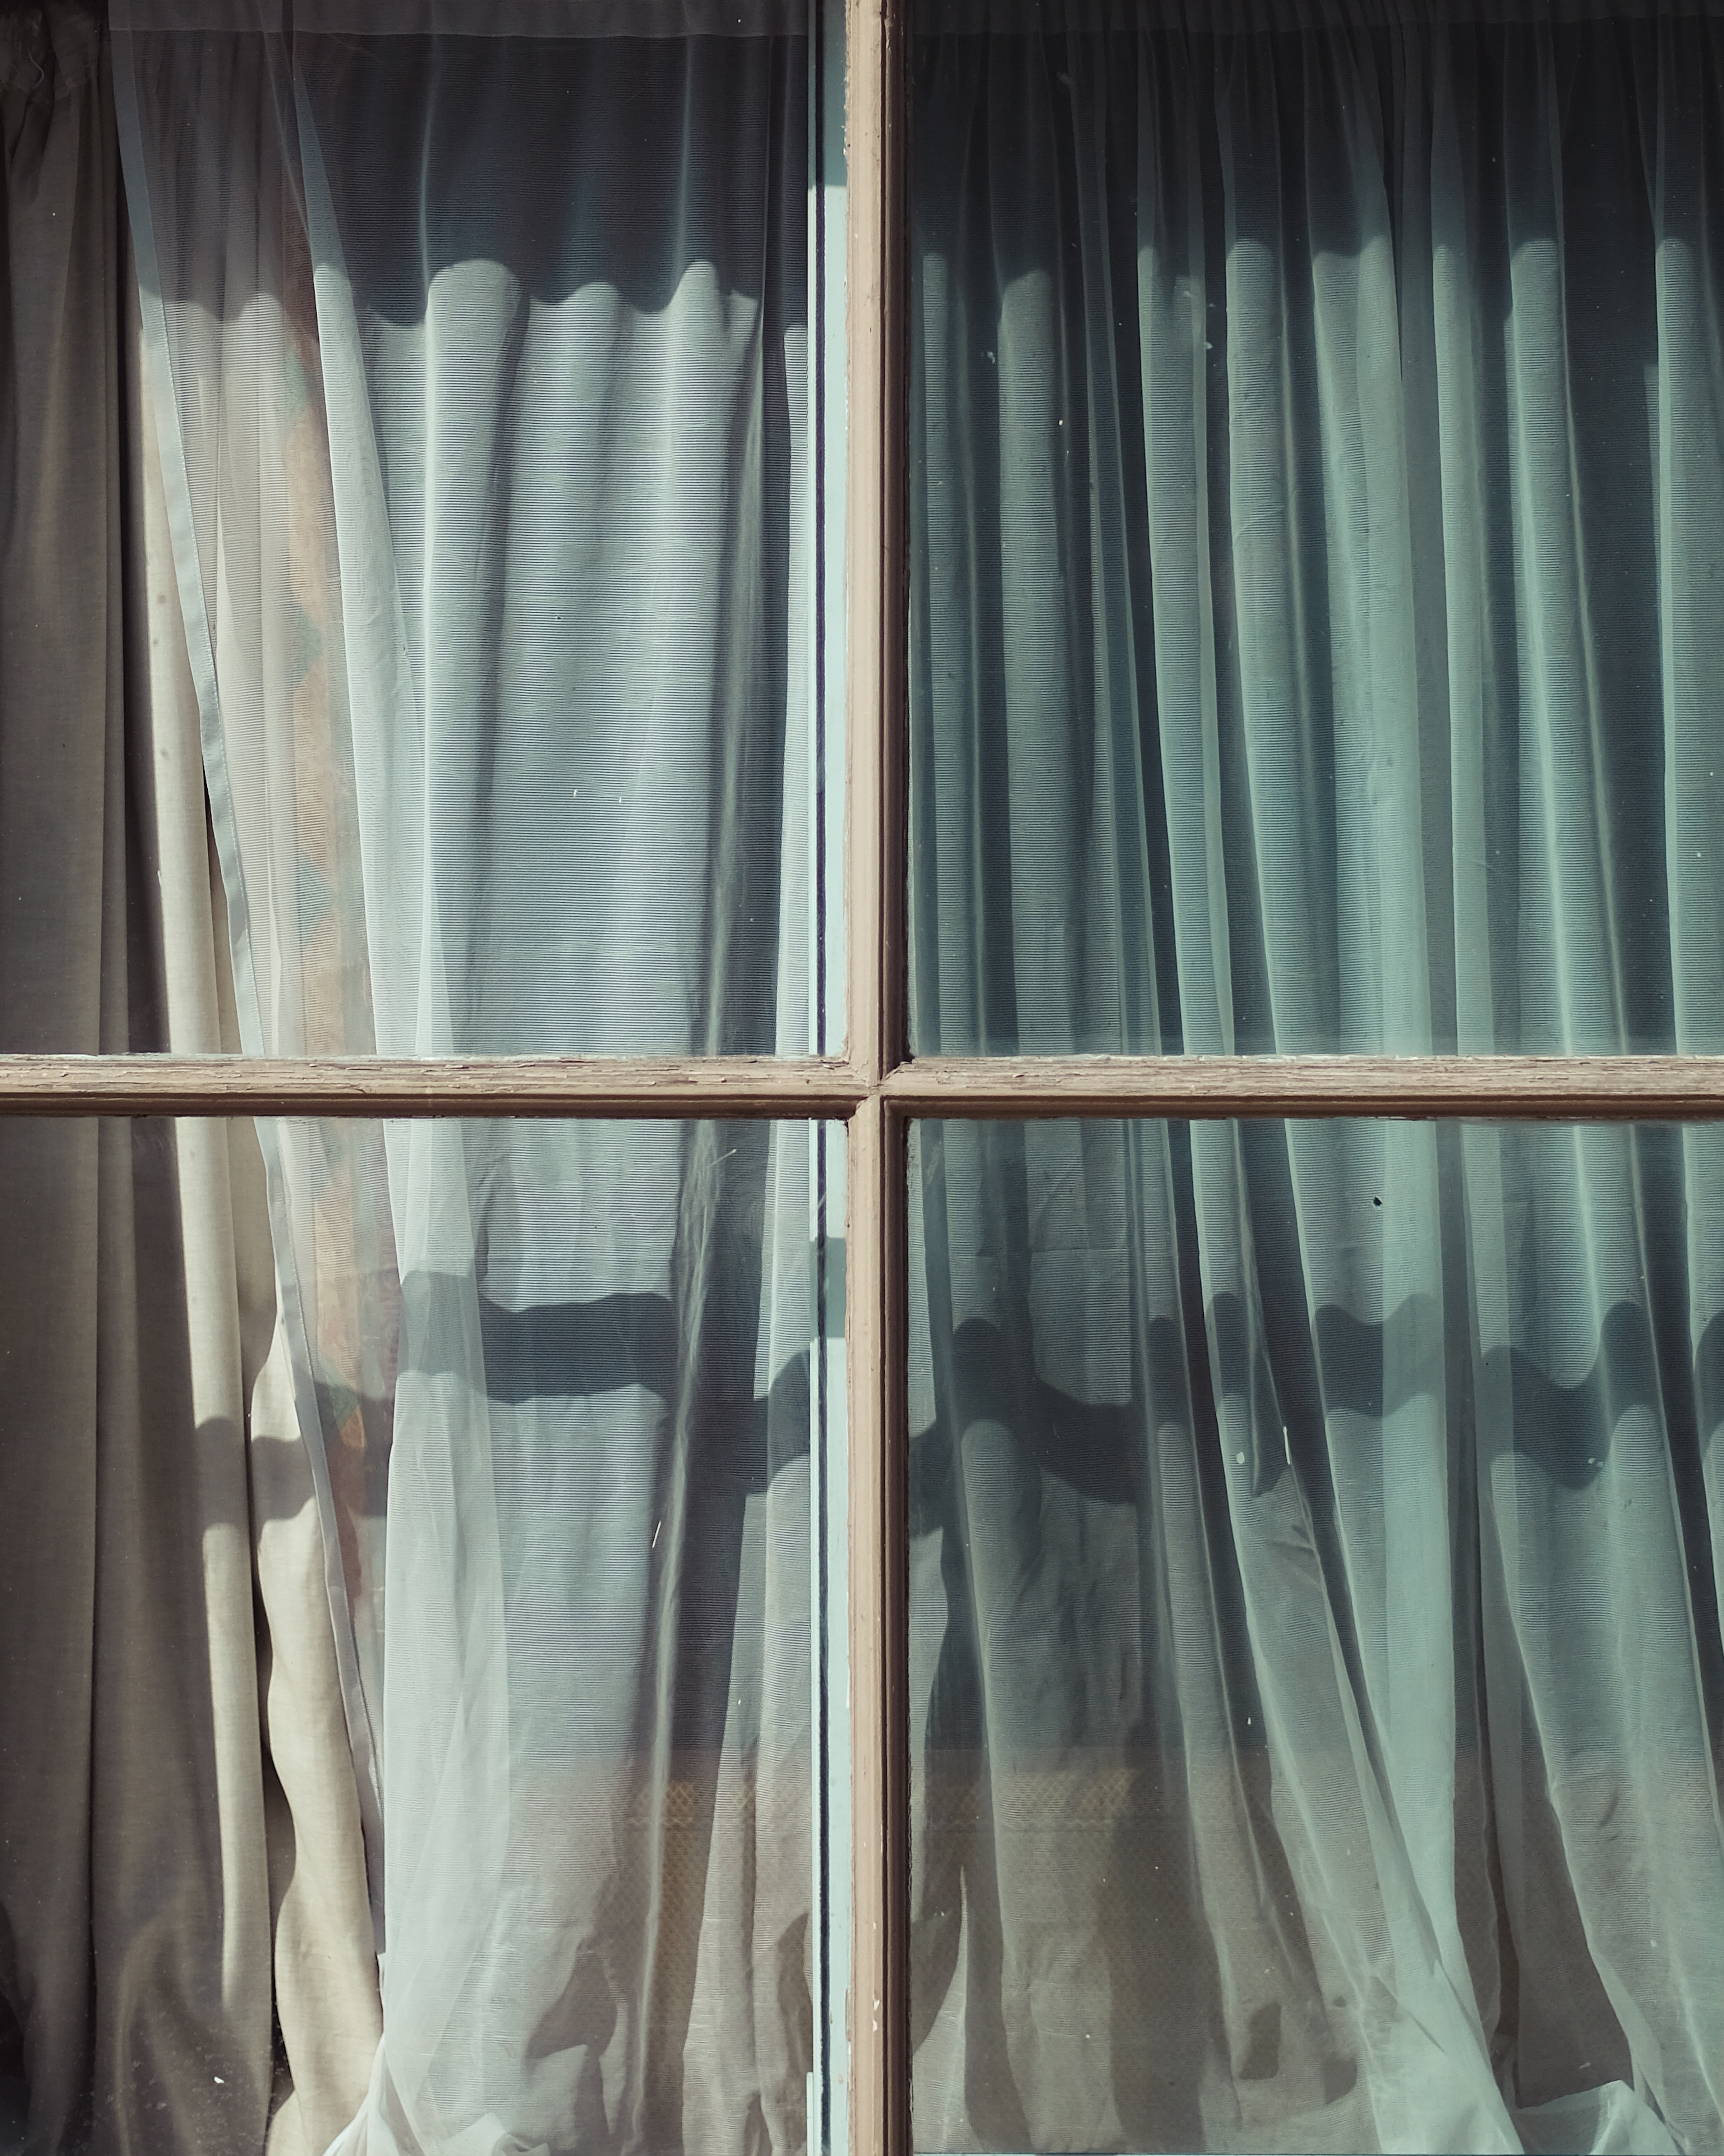 glass window with teal and white curtain